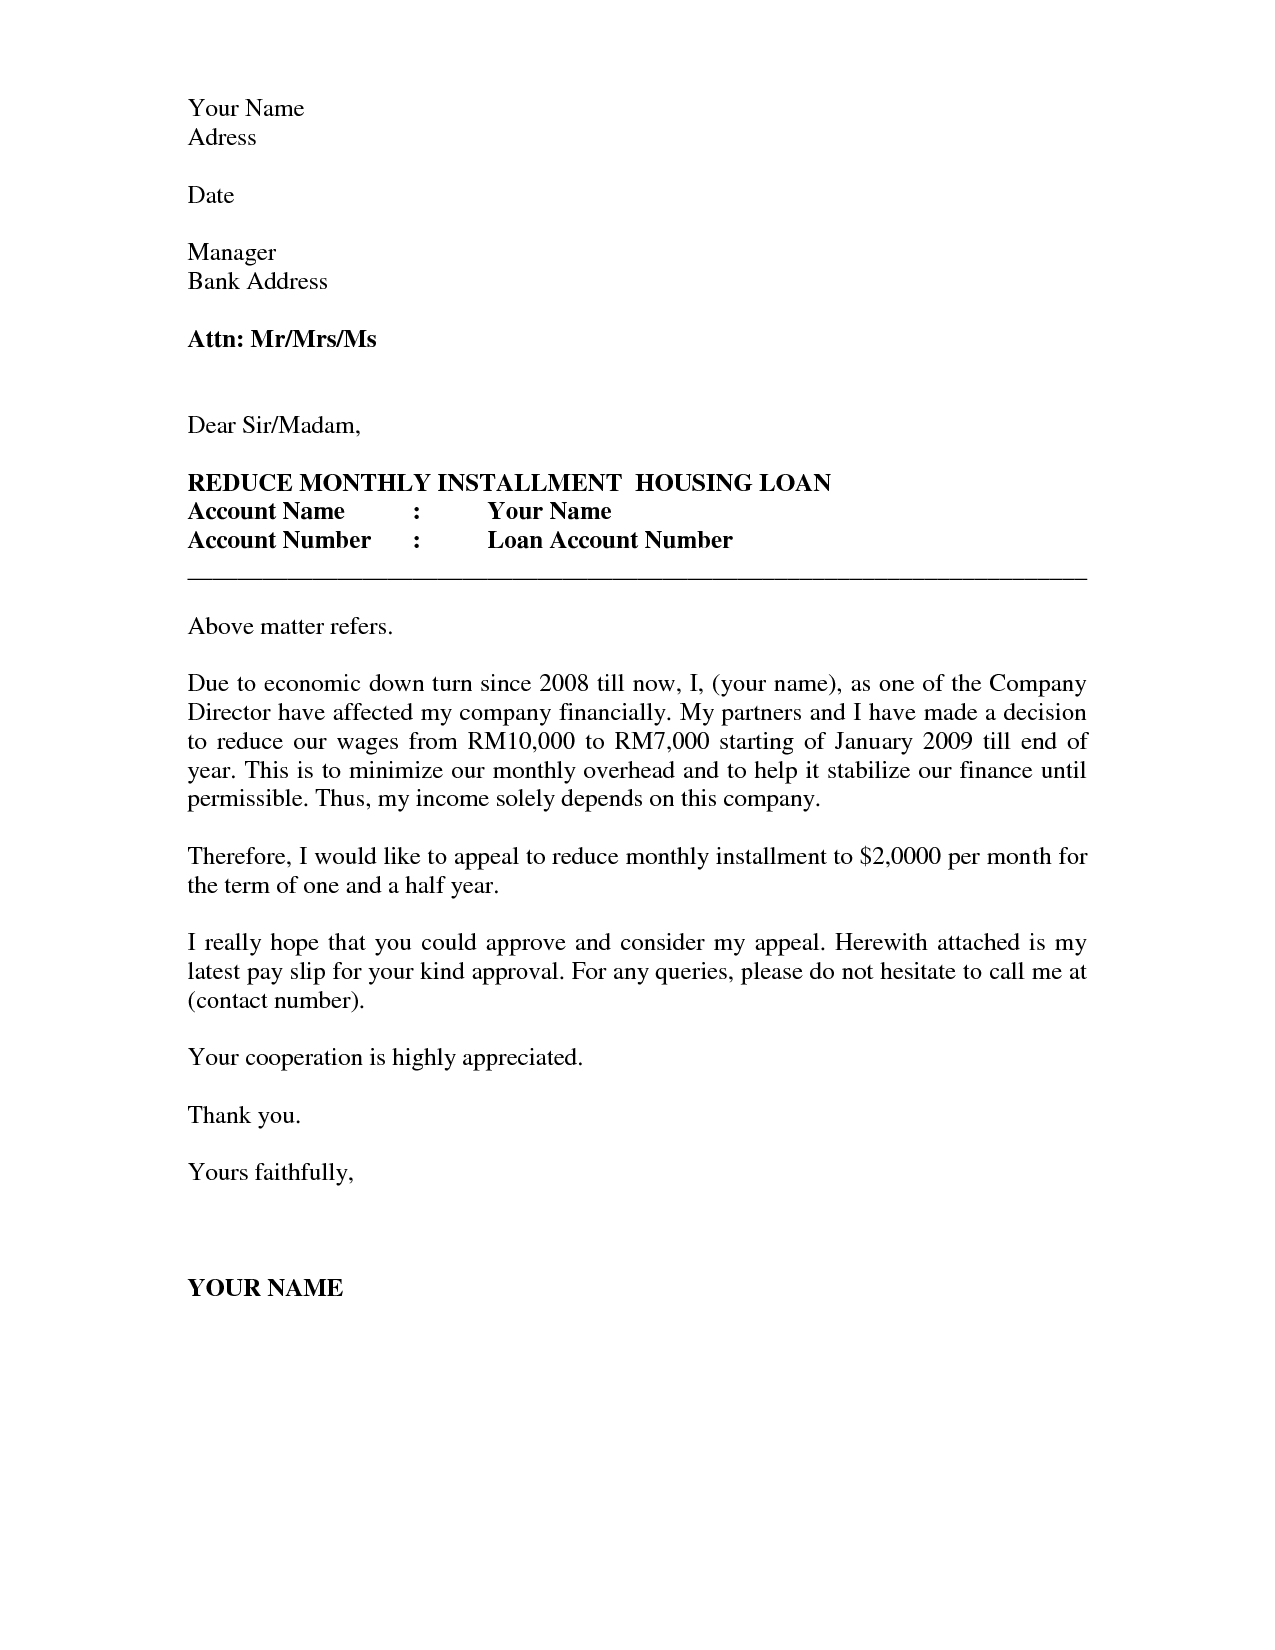 Speeding Ticket Appeal Letter Template - How to Write A Good Appeal Letter Acurnamedia